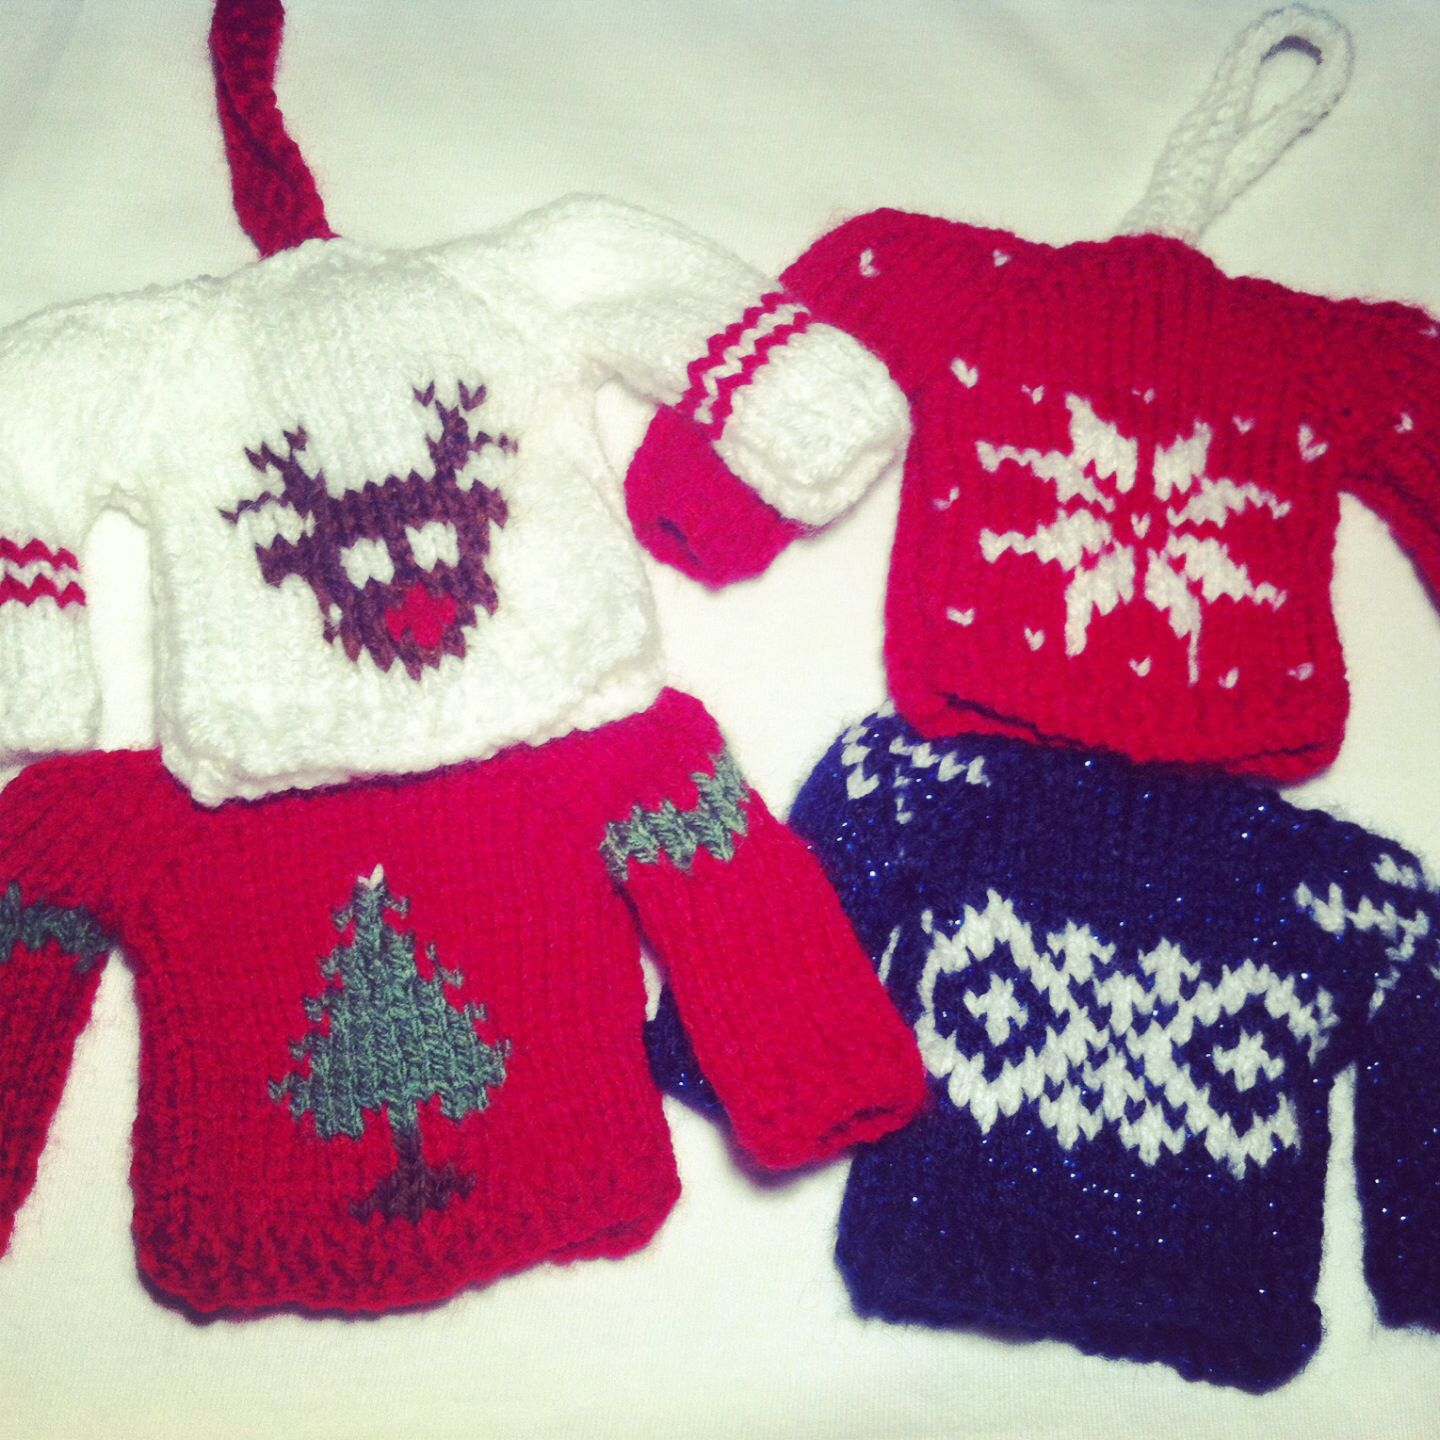 Knitting Pattern Xmas Jumper : Mini Knitted Christmas Jumpers Tree Decorations. These are ...